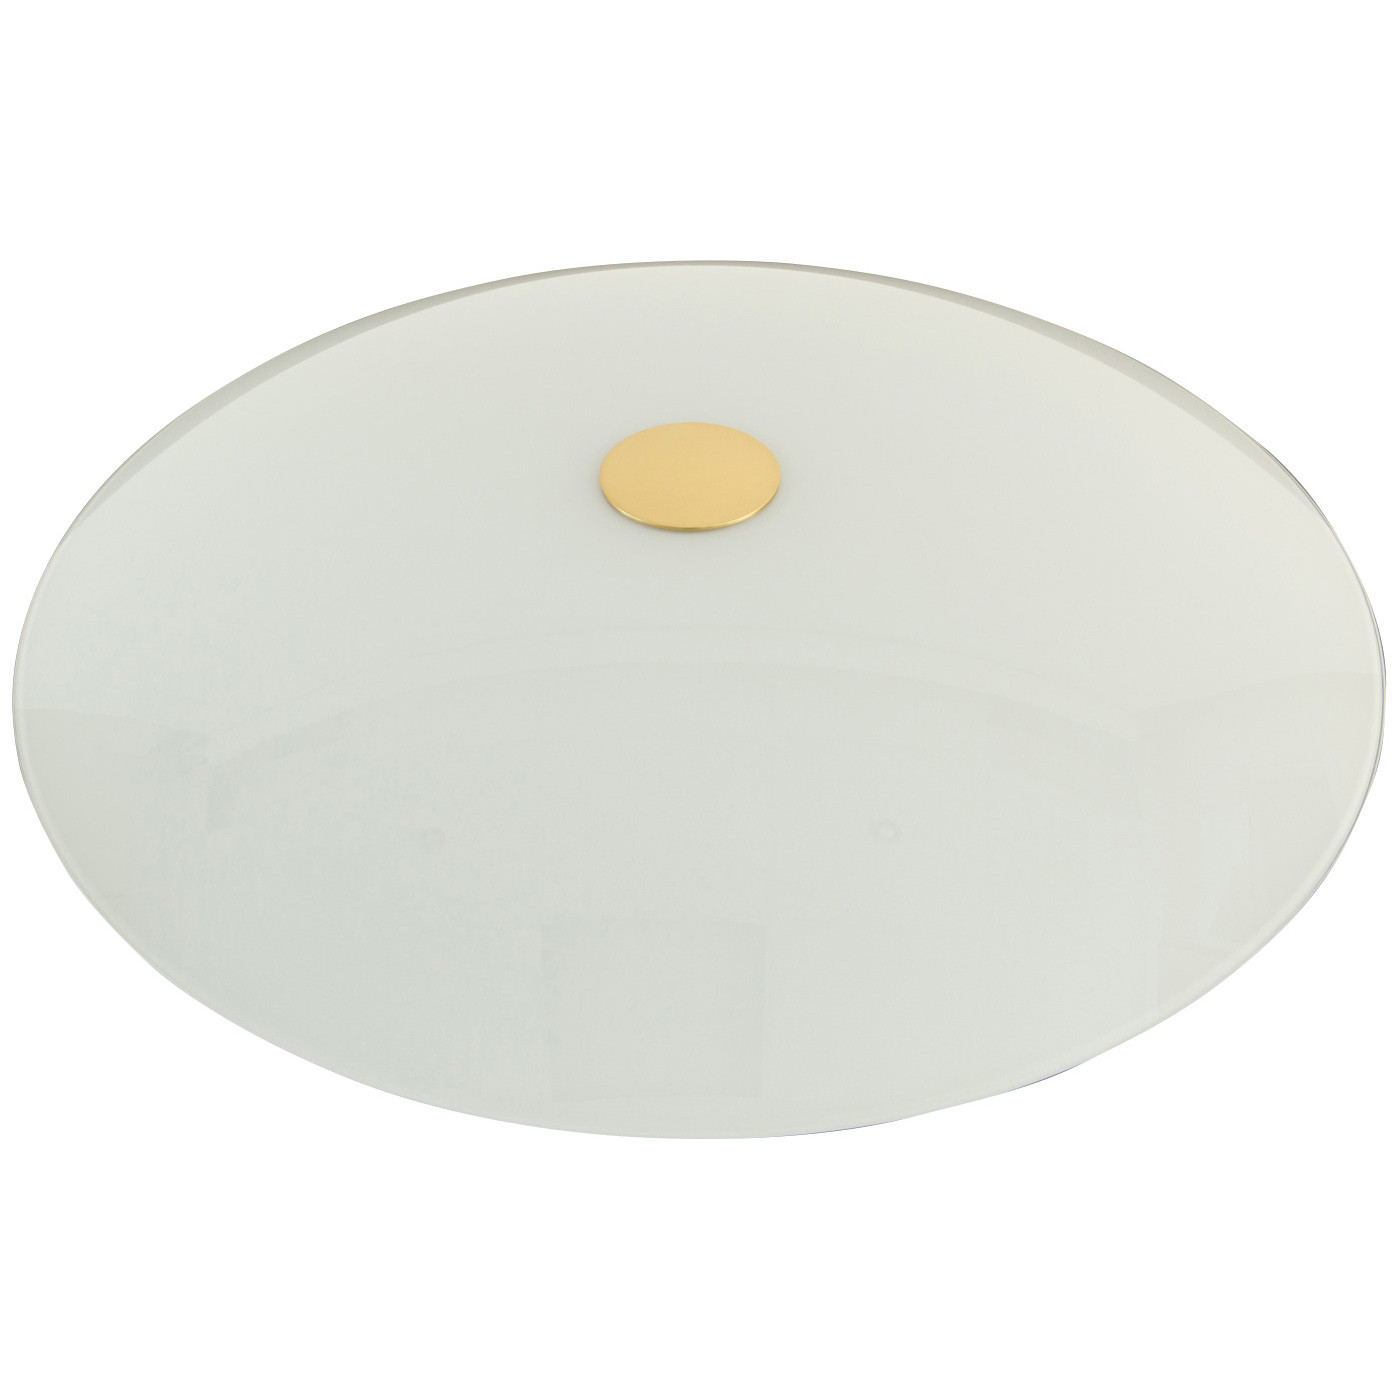 Vs Manufaktur Gela Ceiling Lamp